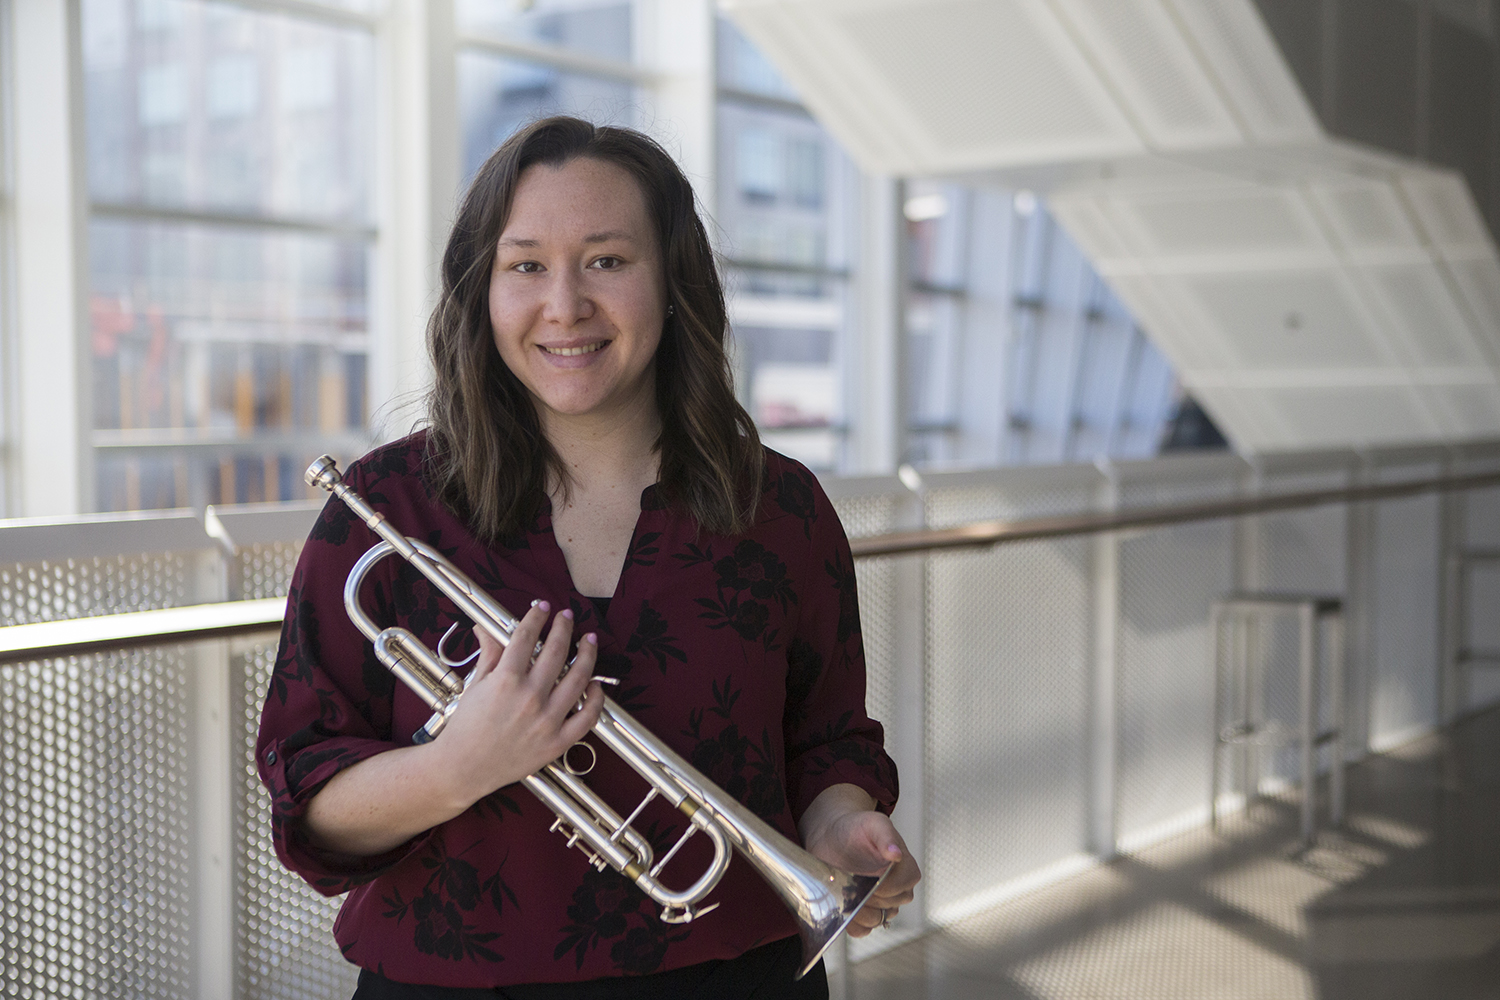 Toni LeFebvre poses for a portrait with her trumpet in the Voxman Music Building on Wednesday, March 6, 2019. (Jenna Galligan /The Daily Iowan)